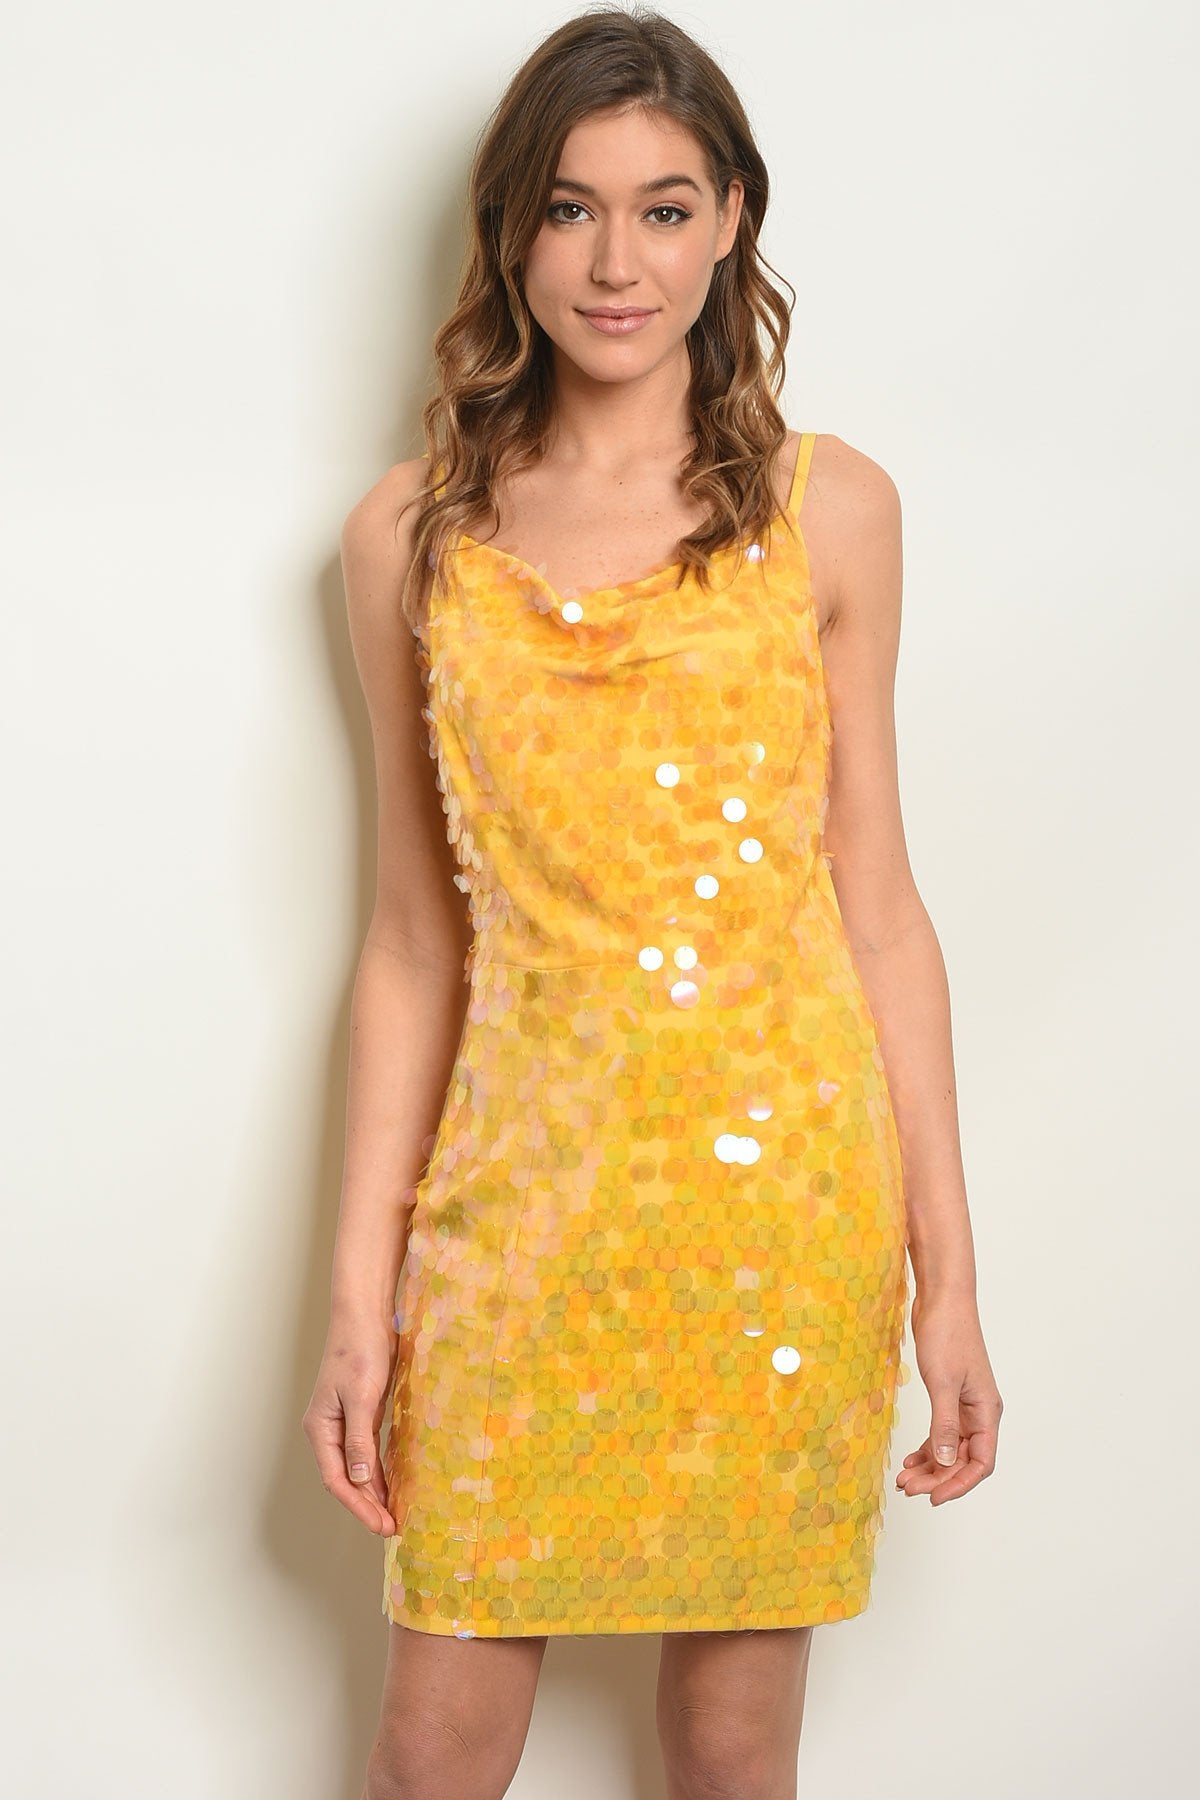 Party Style Womens Sequins Dress - BrandsGuru